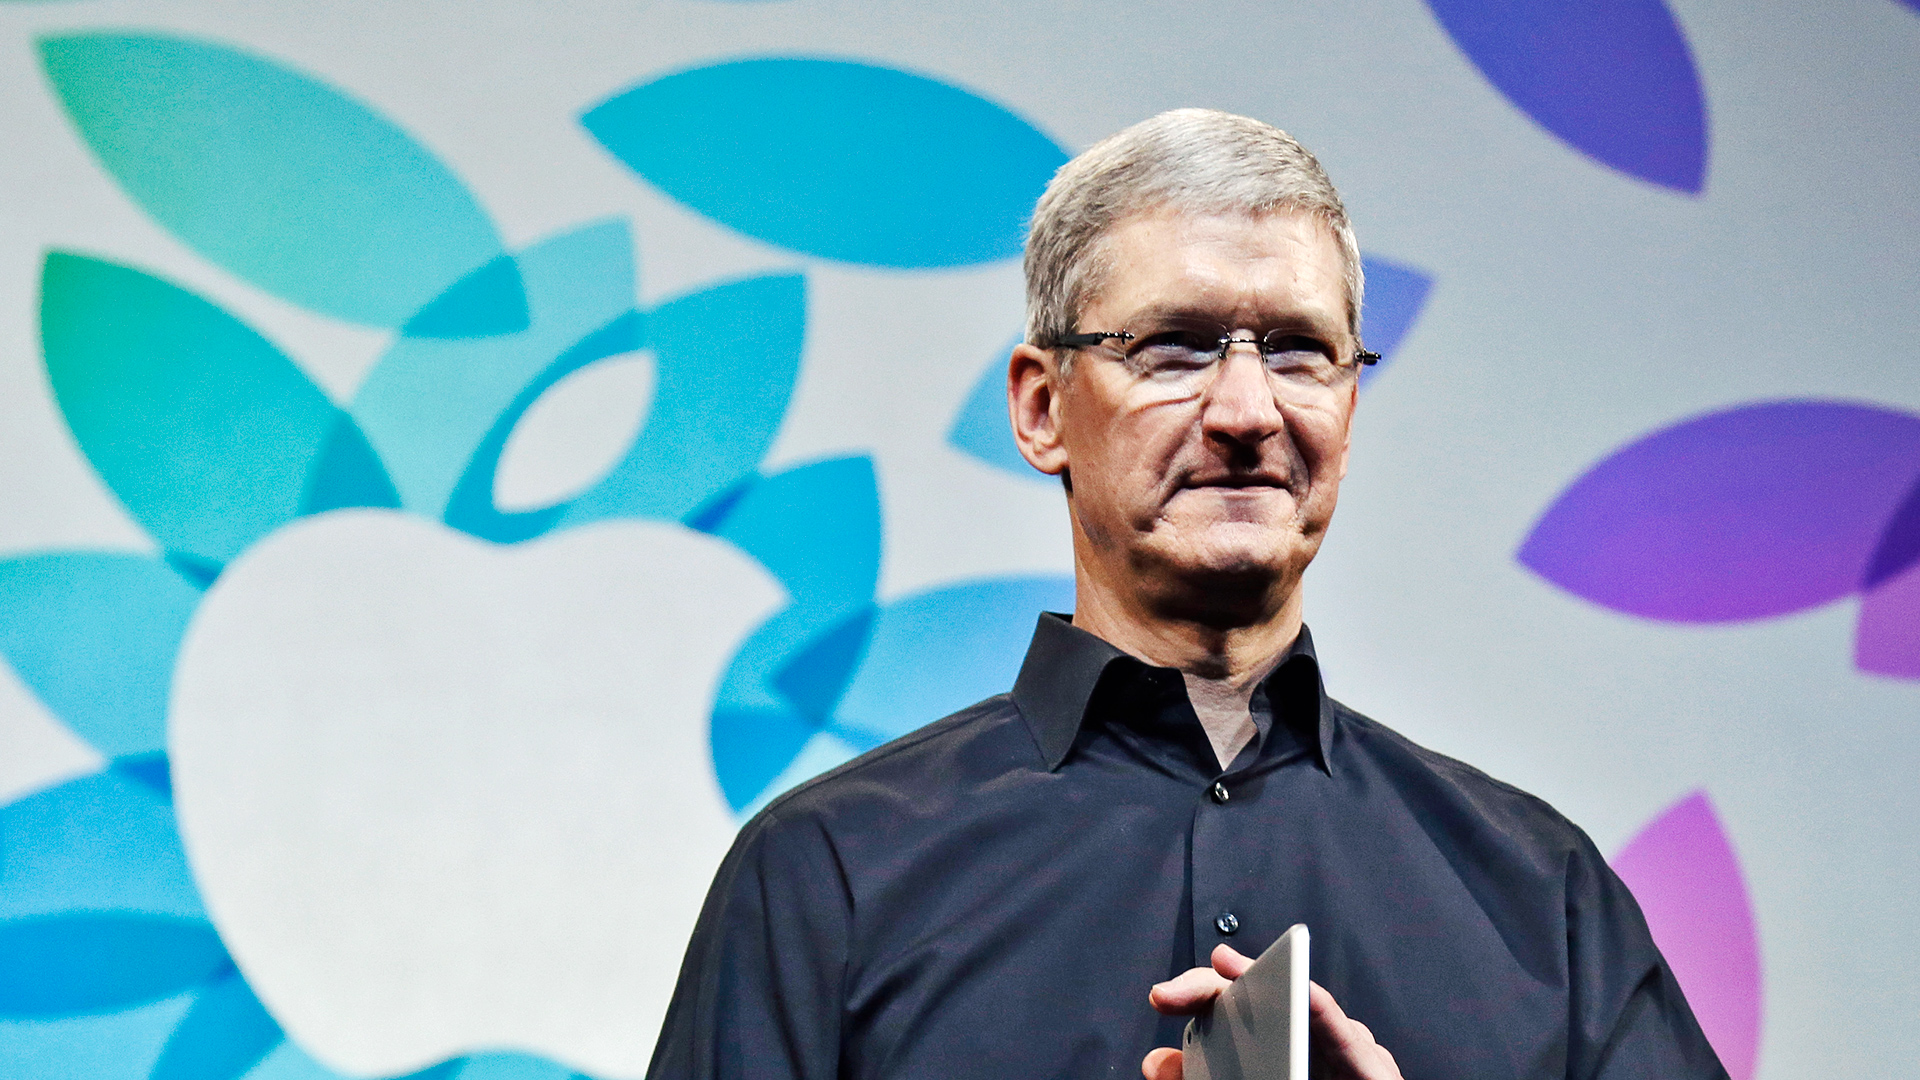 1920x1080 - Tim Cook Wallpapers 9